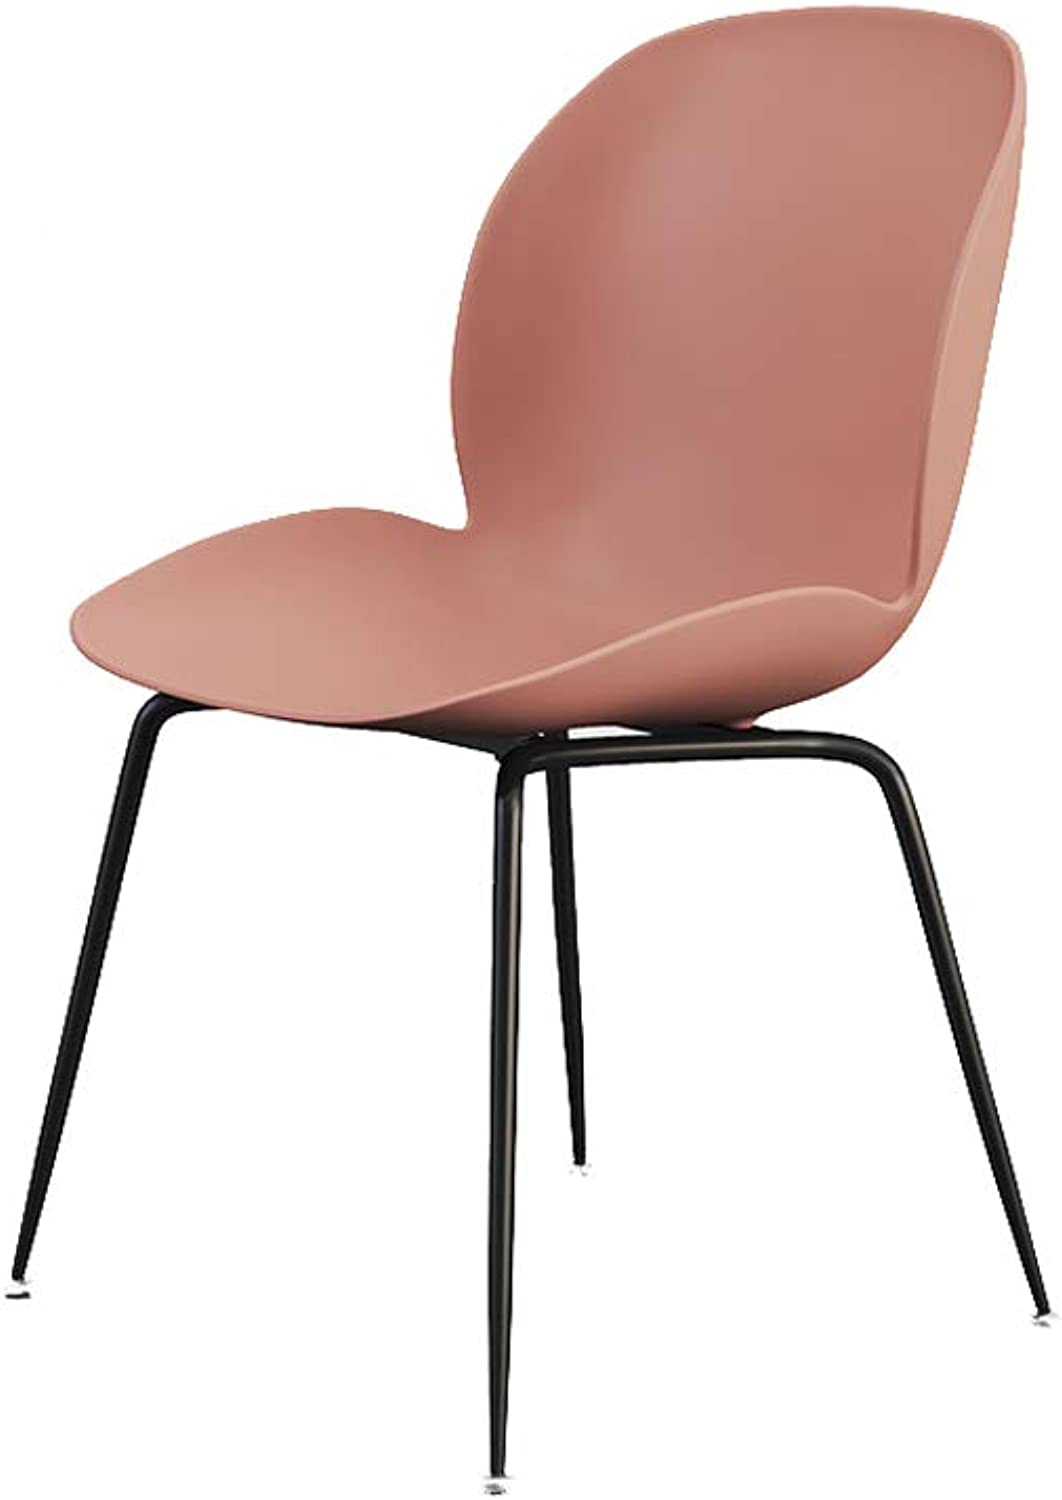 Ailj Dining Chair, Iron Lounge Chair Home Chair Office Chair Restaurant color Chair Hotel Chair (3 colors) (color   Pink)